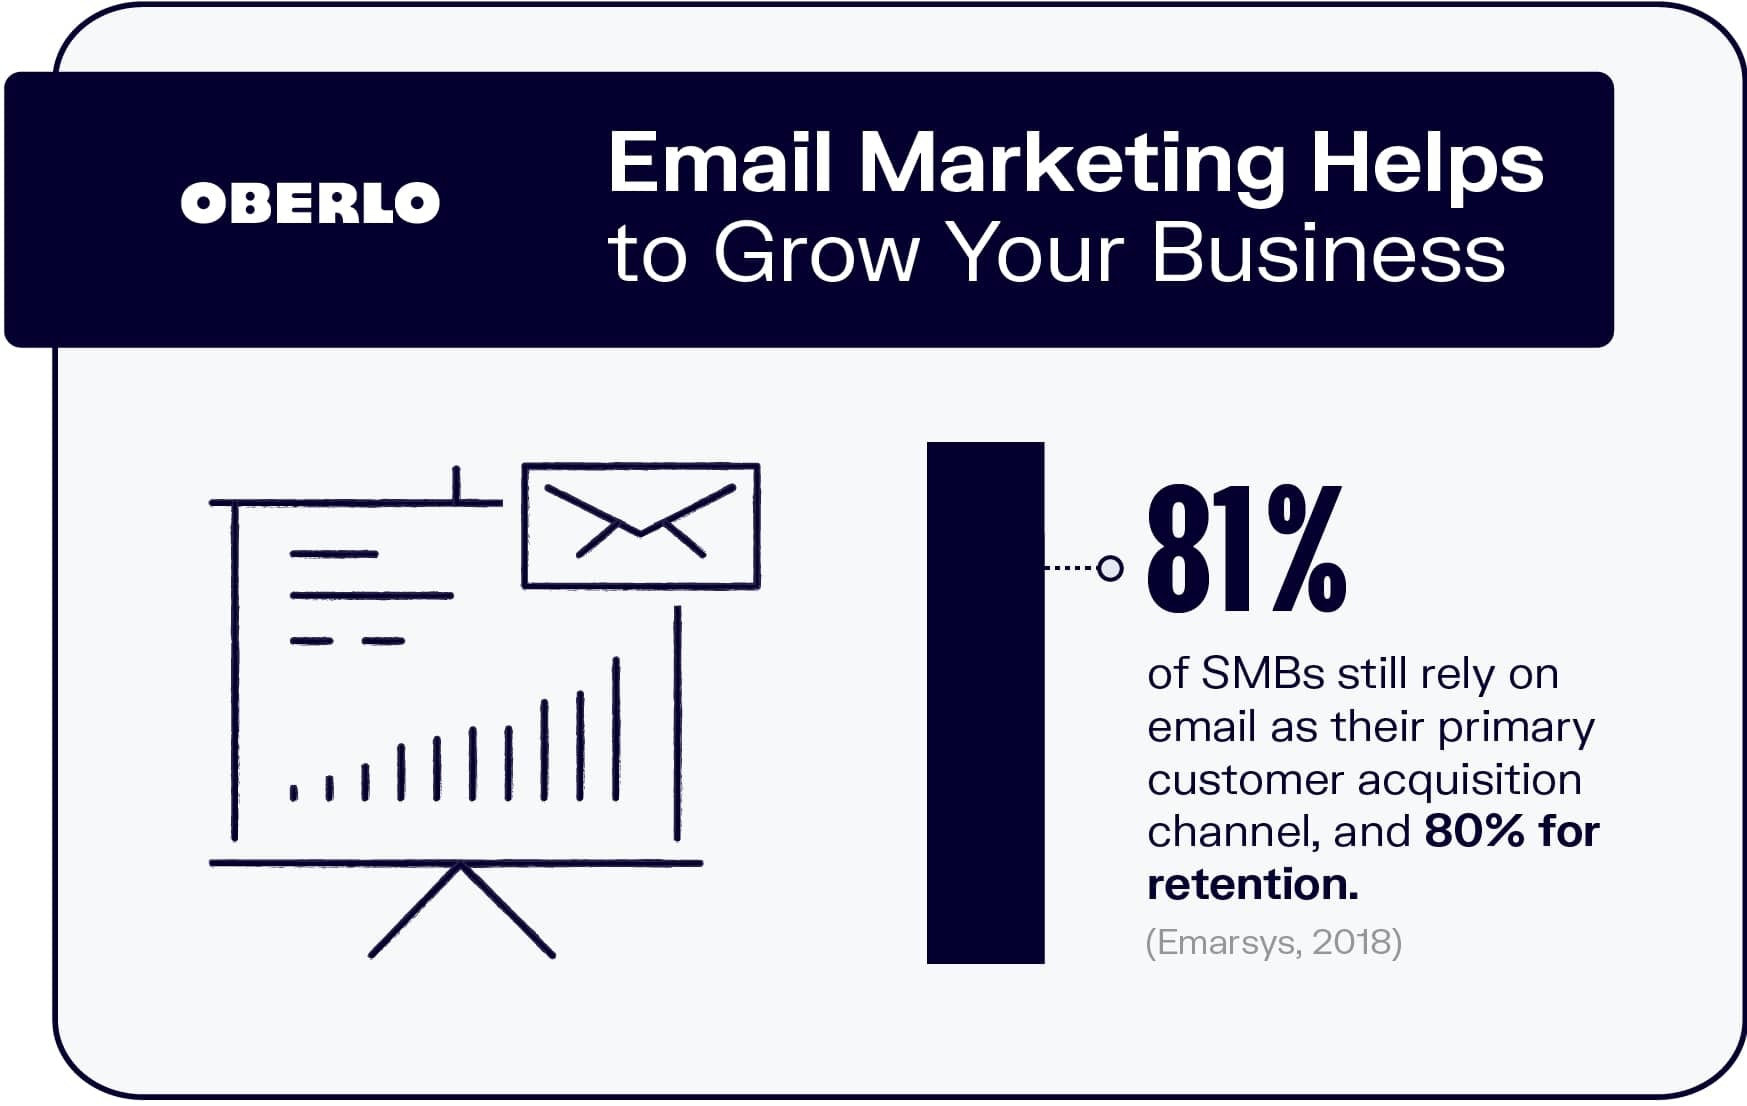 Email Marketing Helps to Grow Your Business